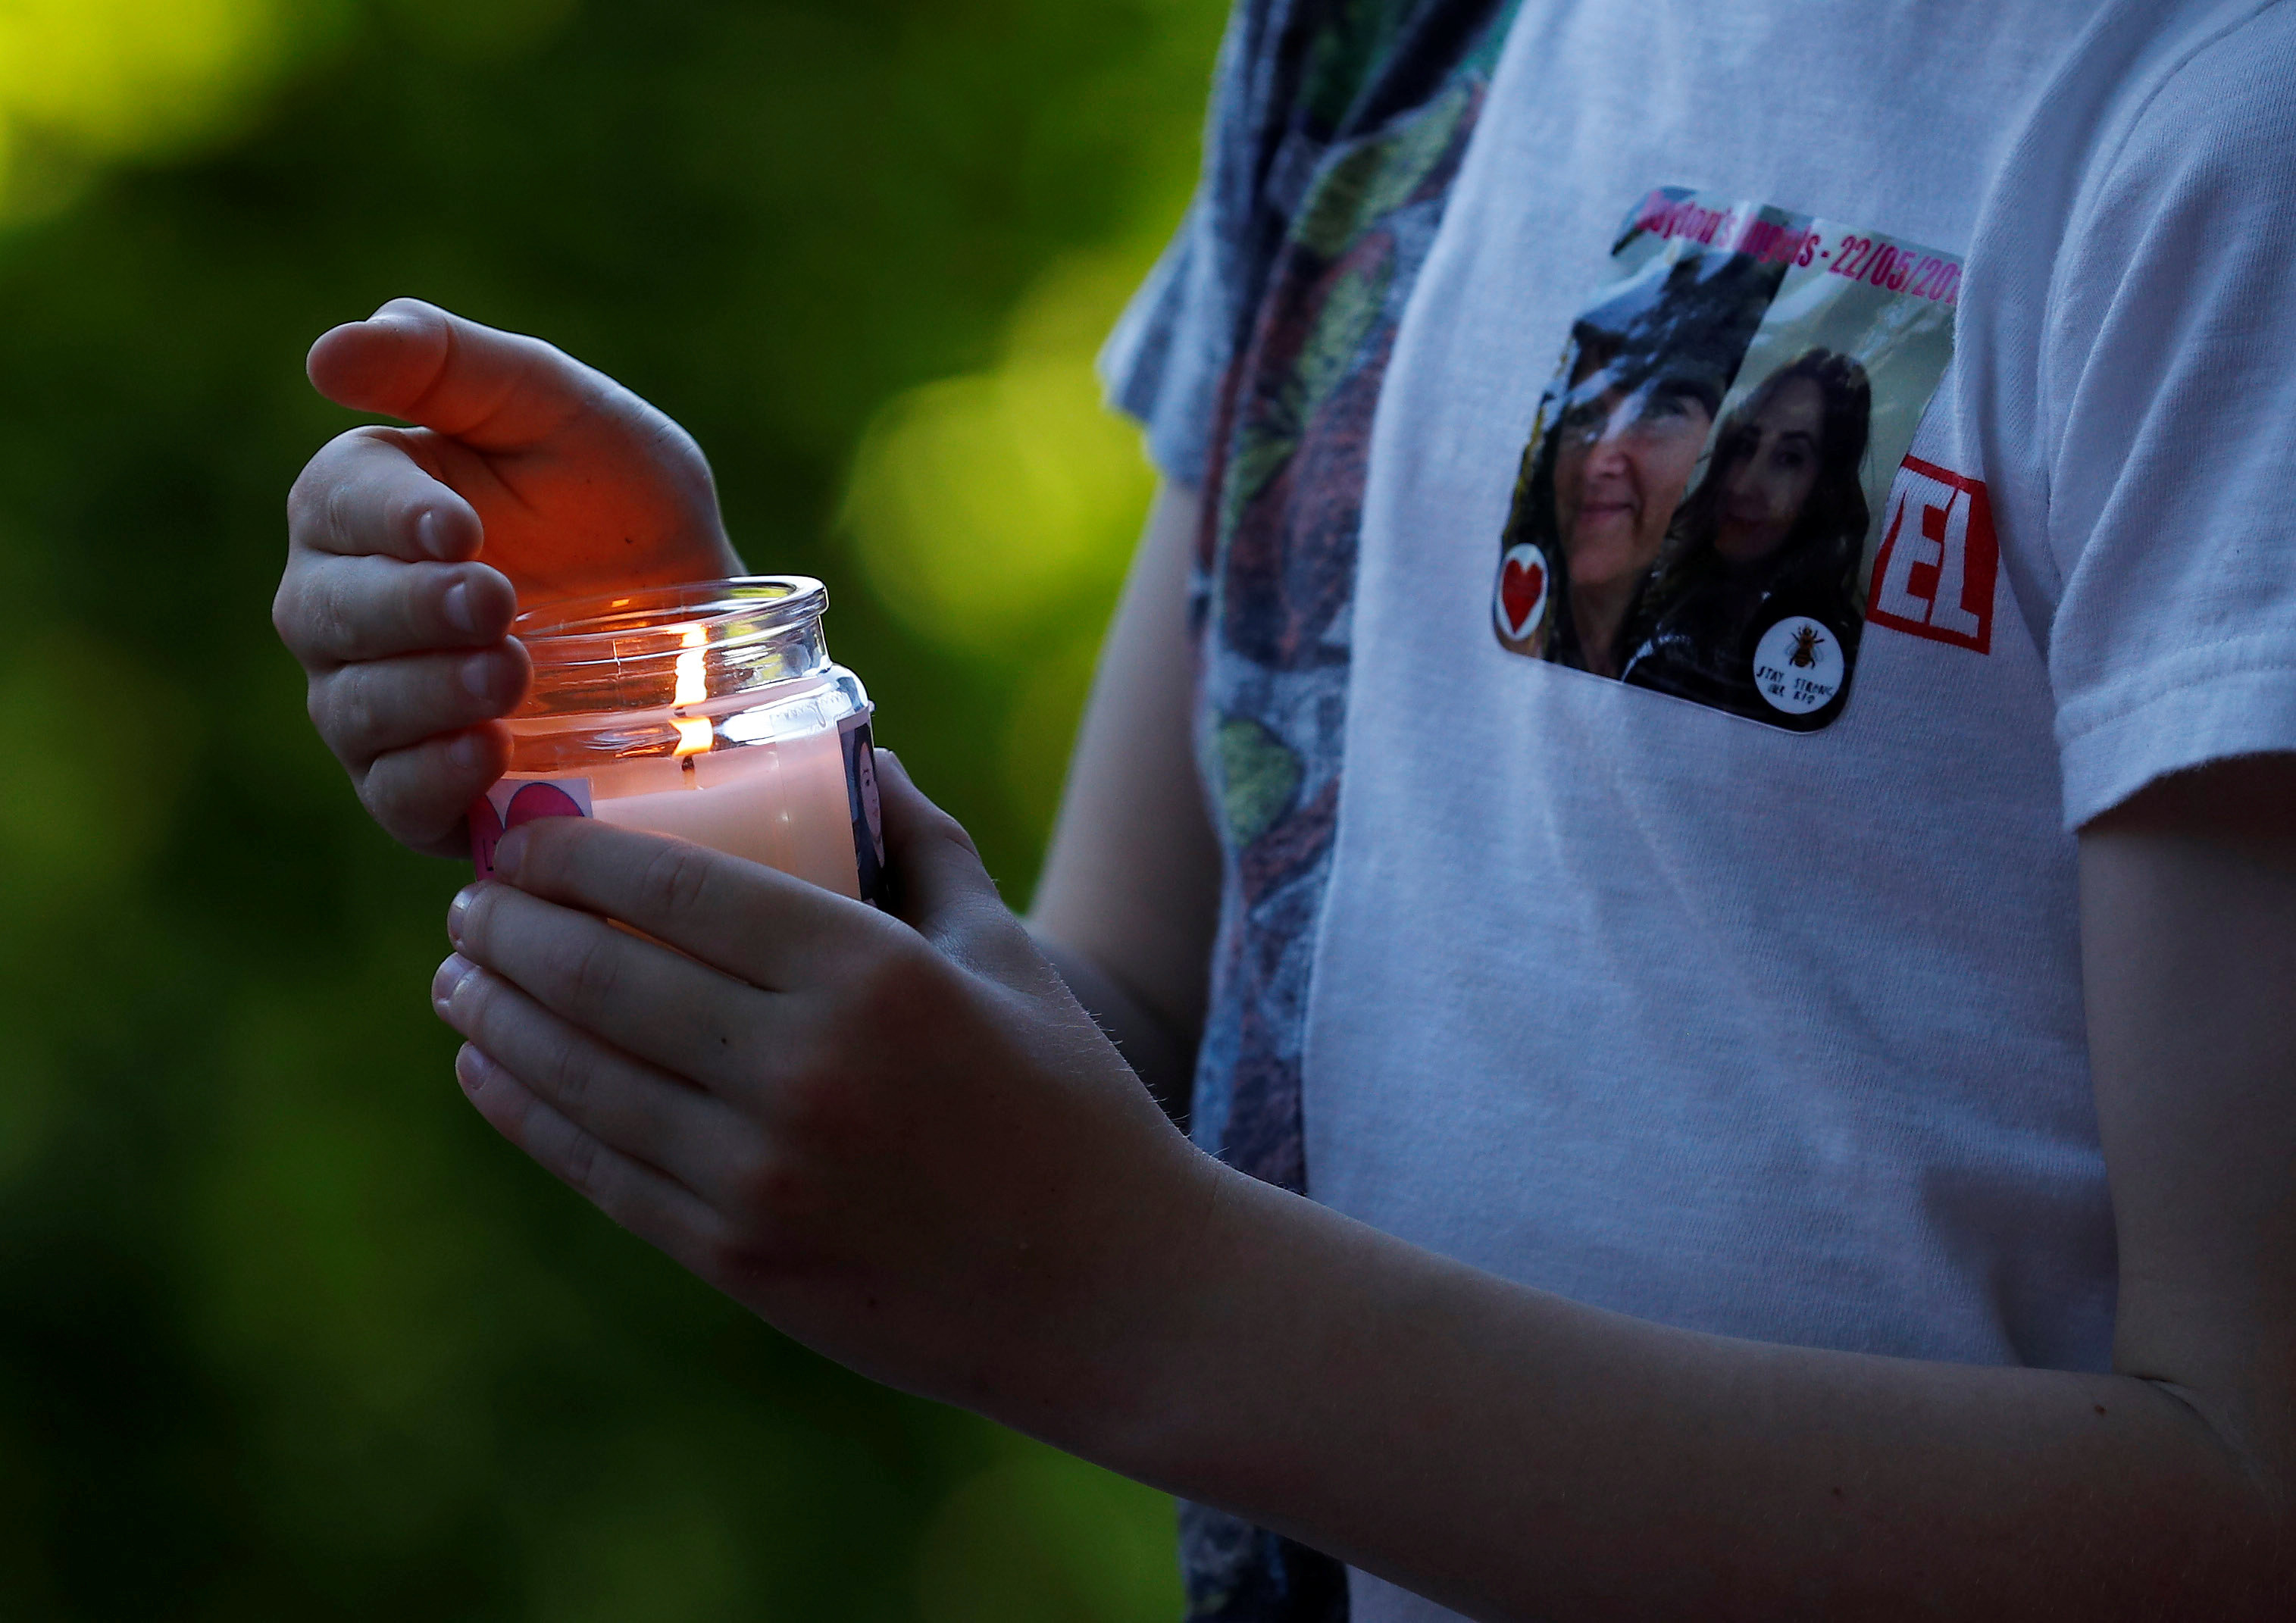 A boy carries a candle during a vigil for the victims of an attack on concert goers at Manchester Arena, in Royton, near Manchester, Britain on May 26, 2017. (REUTERS/Phil Noble)